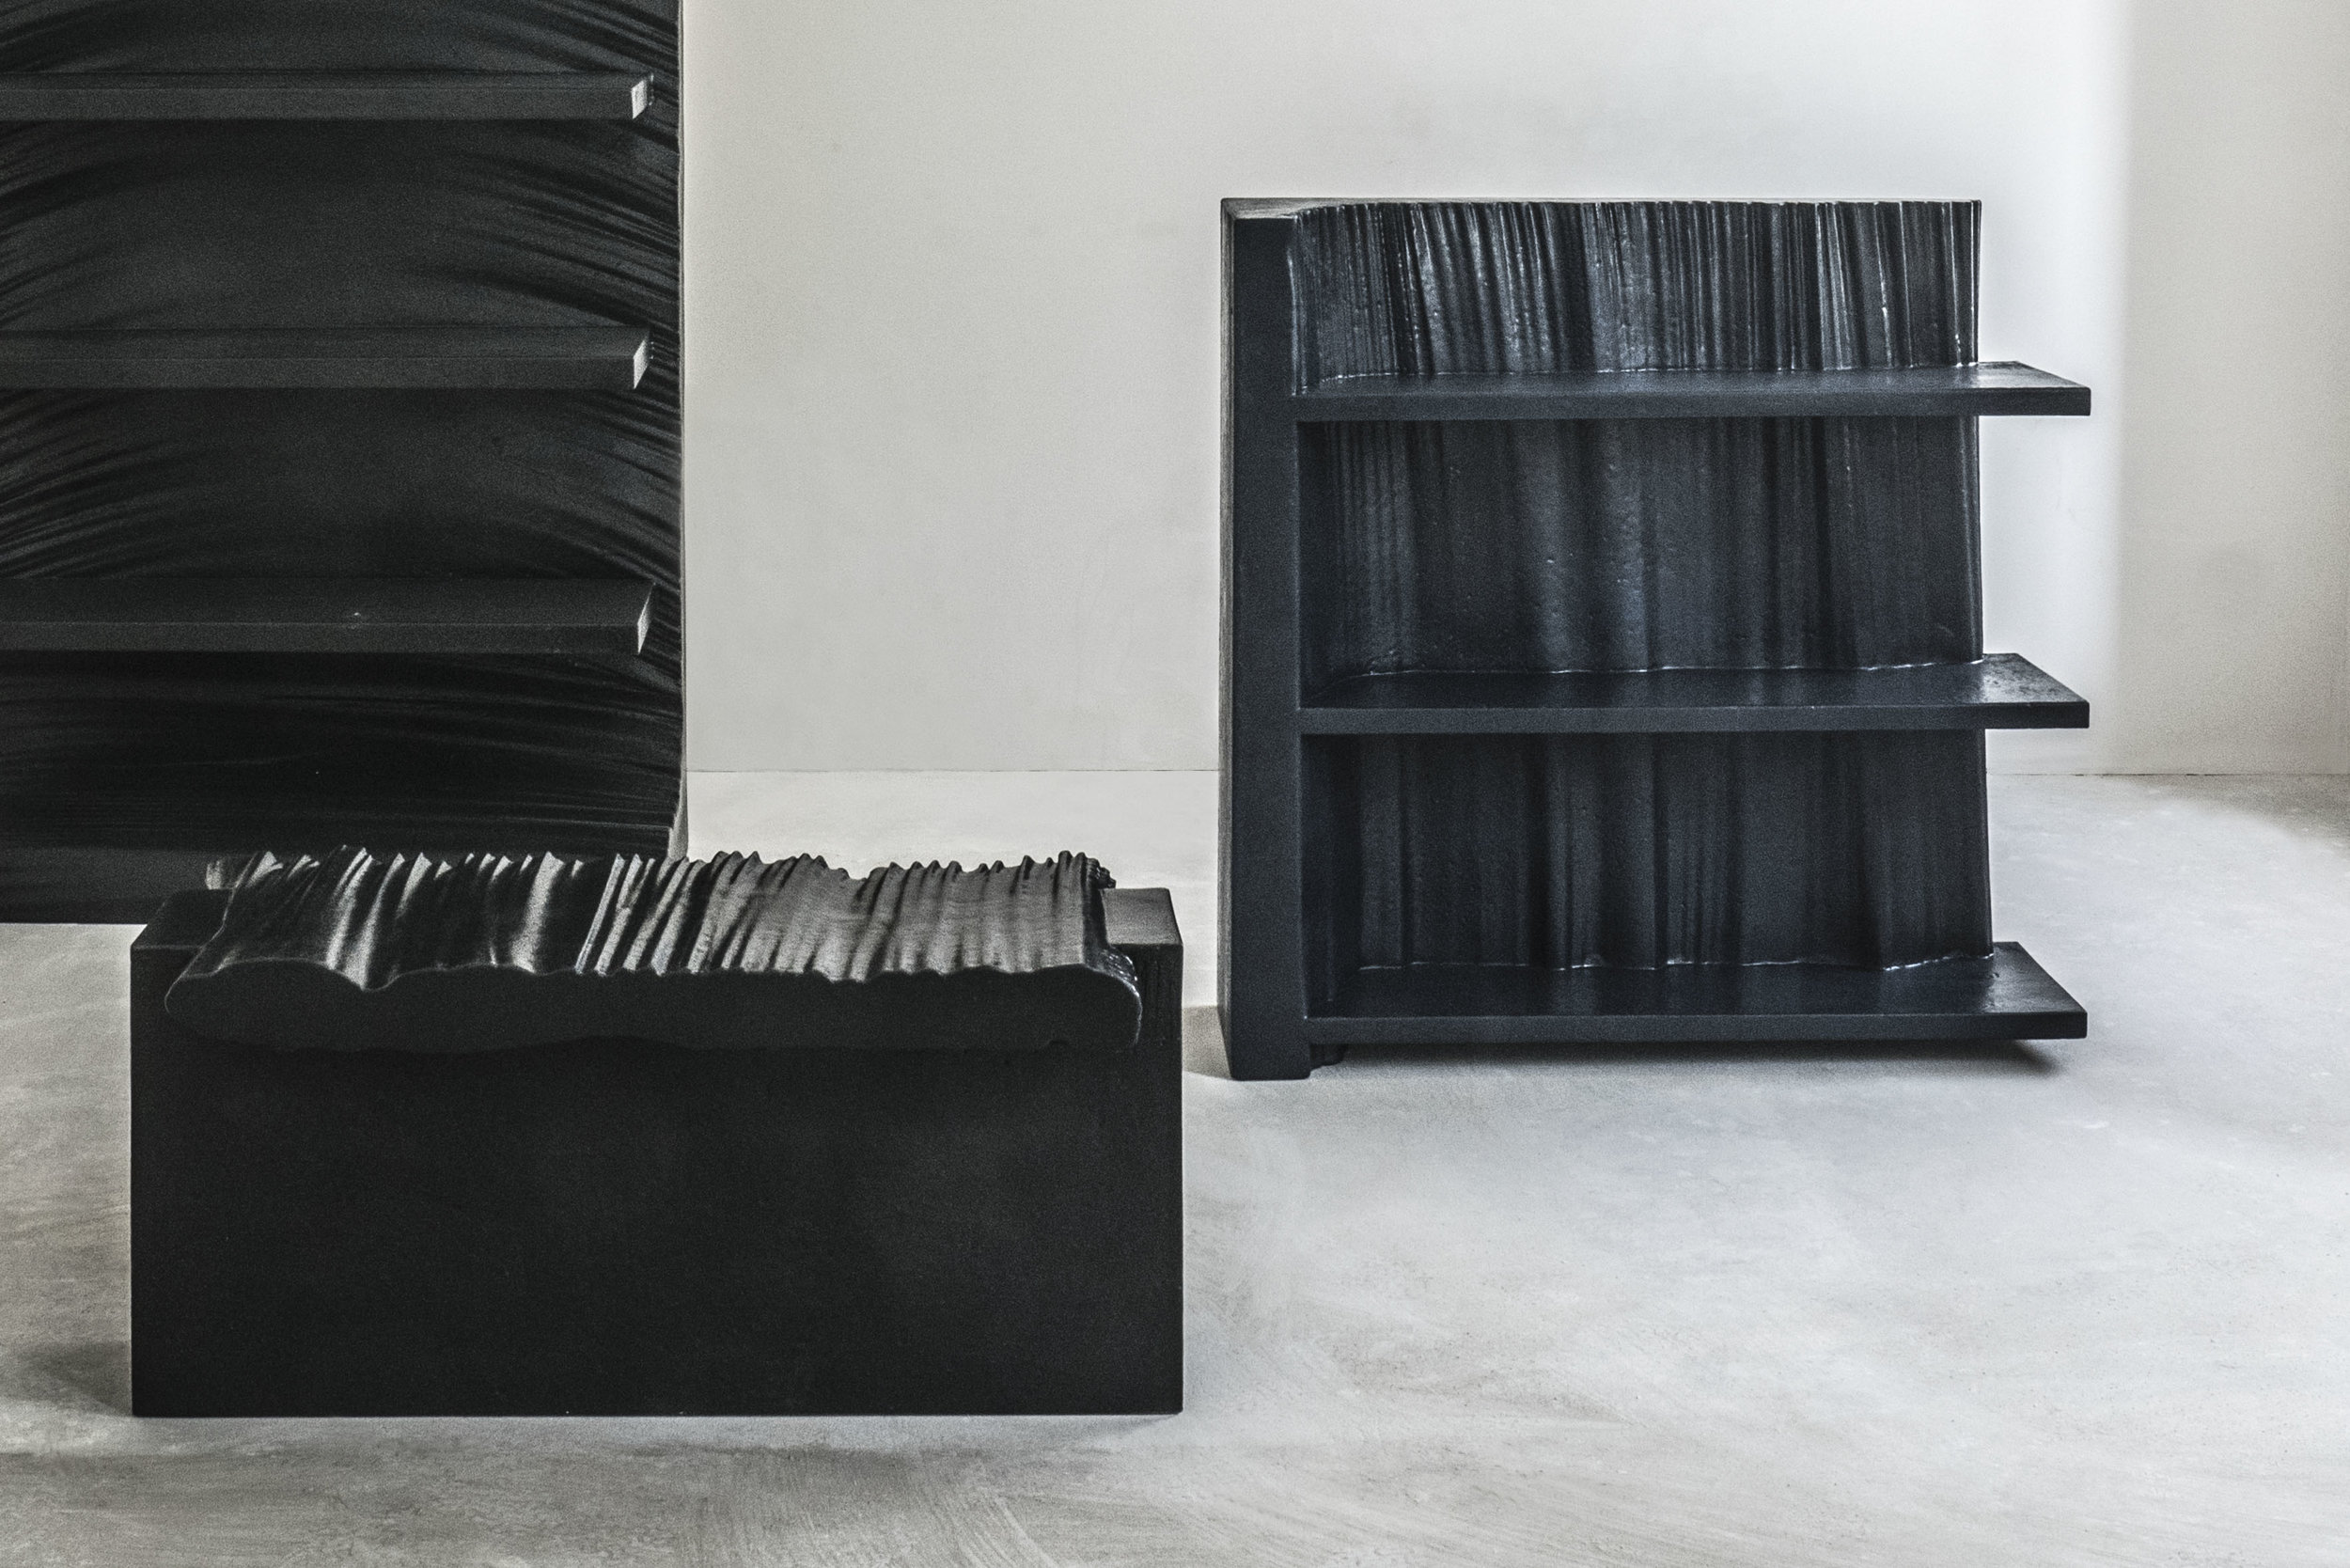 Collection_Shelves_Low res 01.jpg